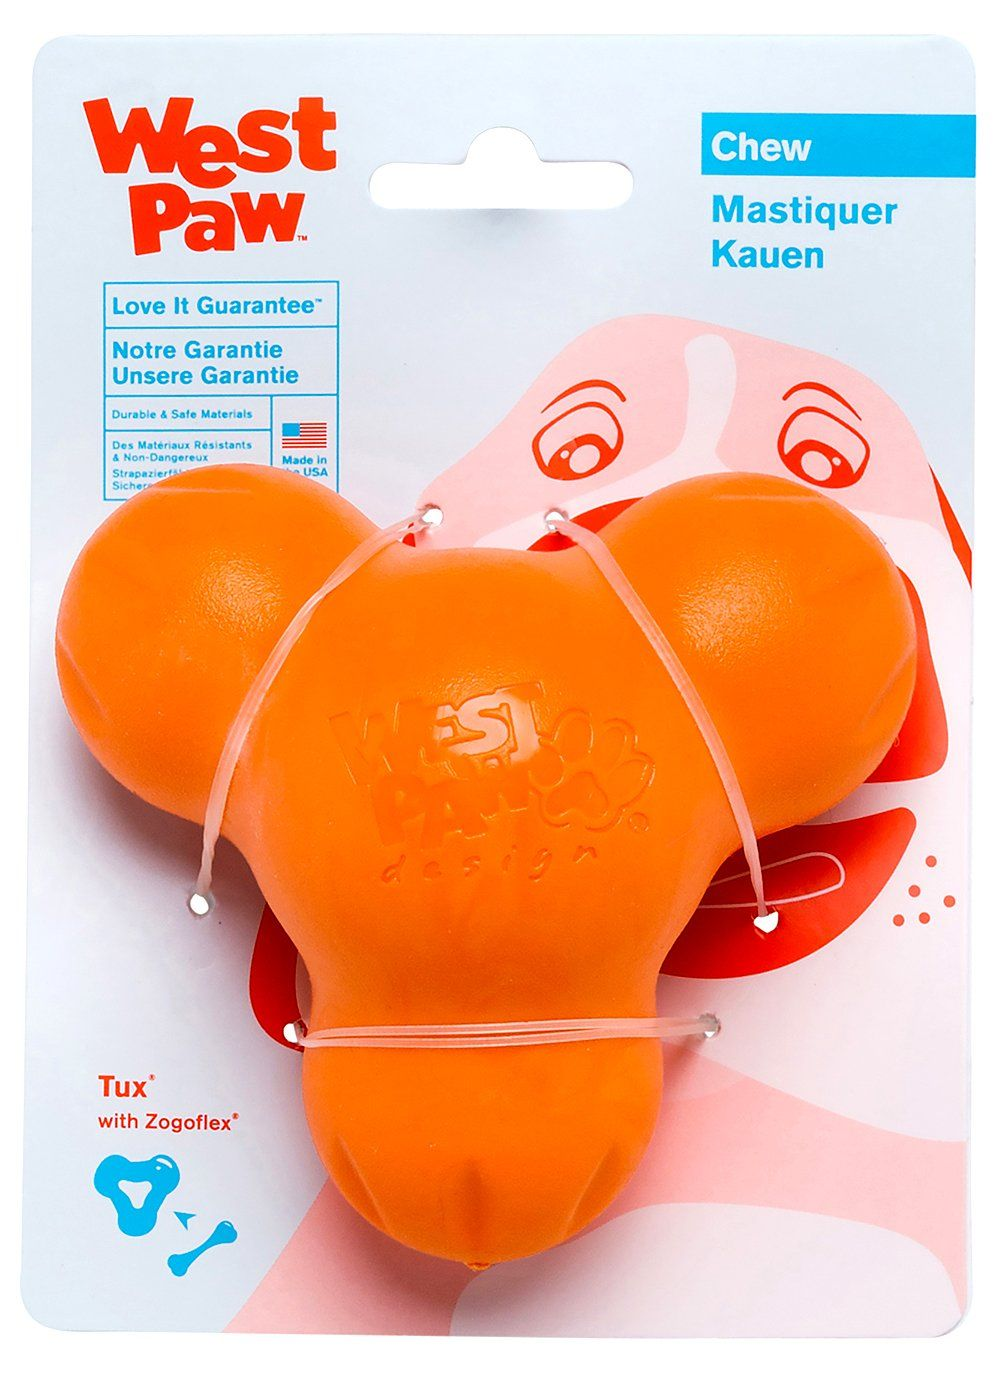 West Paw Zogoflex Tux Interactive Treat Dispensing Dog Chew Toy